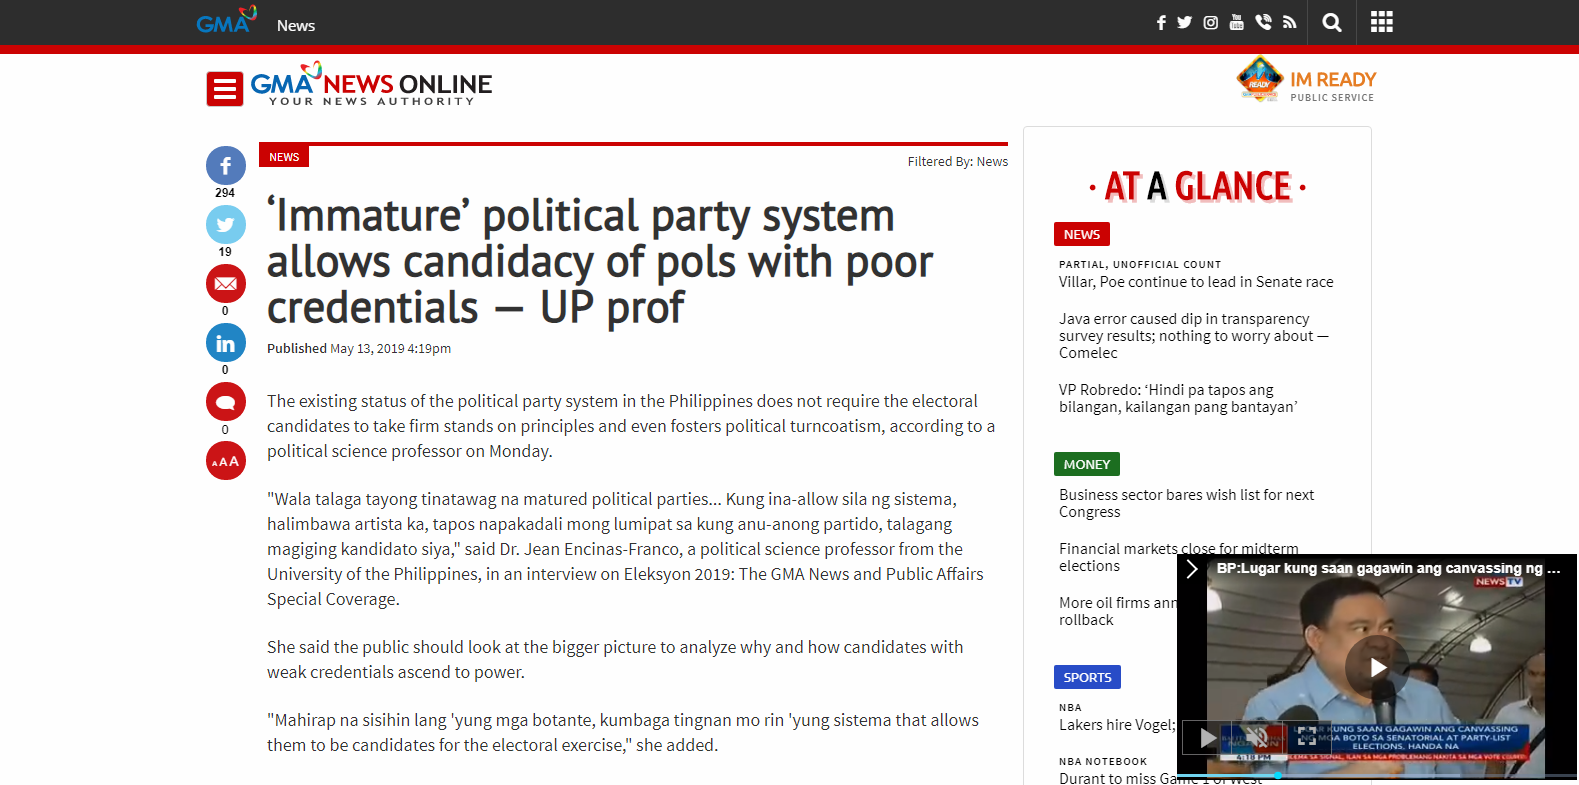 'Immature' political party system allows candidacy of pols with poor credentials - UP prof